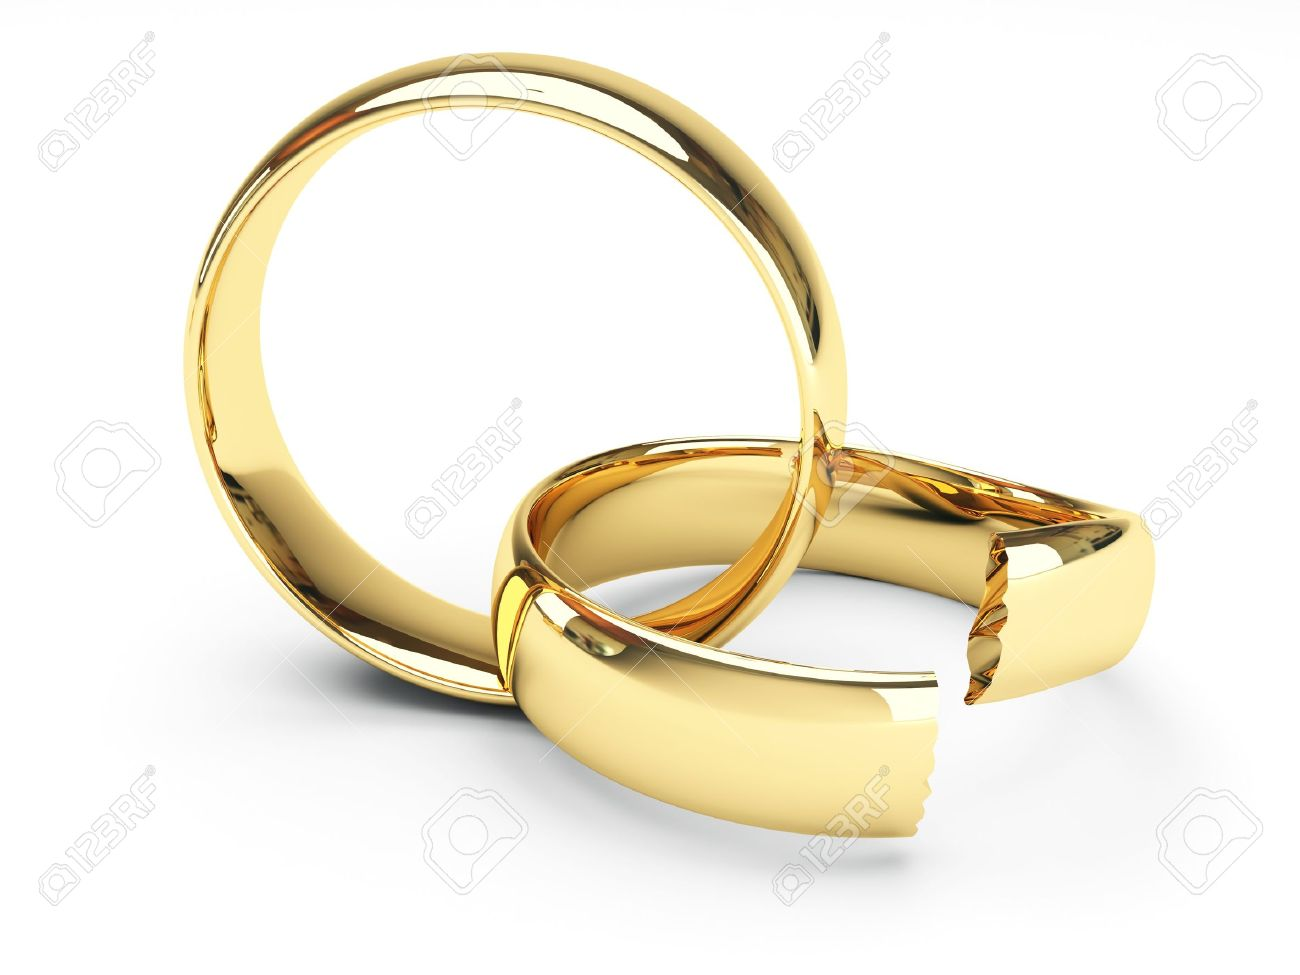 gallery broken stock awesome elegant of wedding view displaying rings gold isolated attachment image full illustration